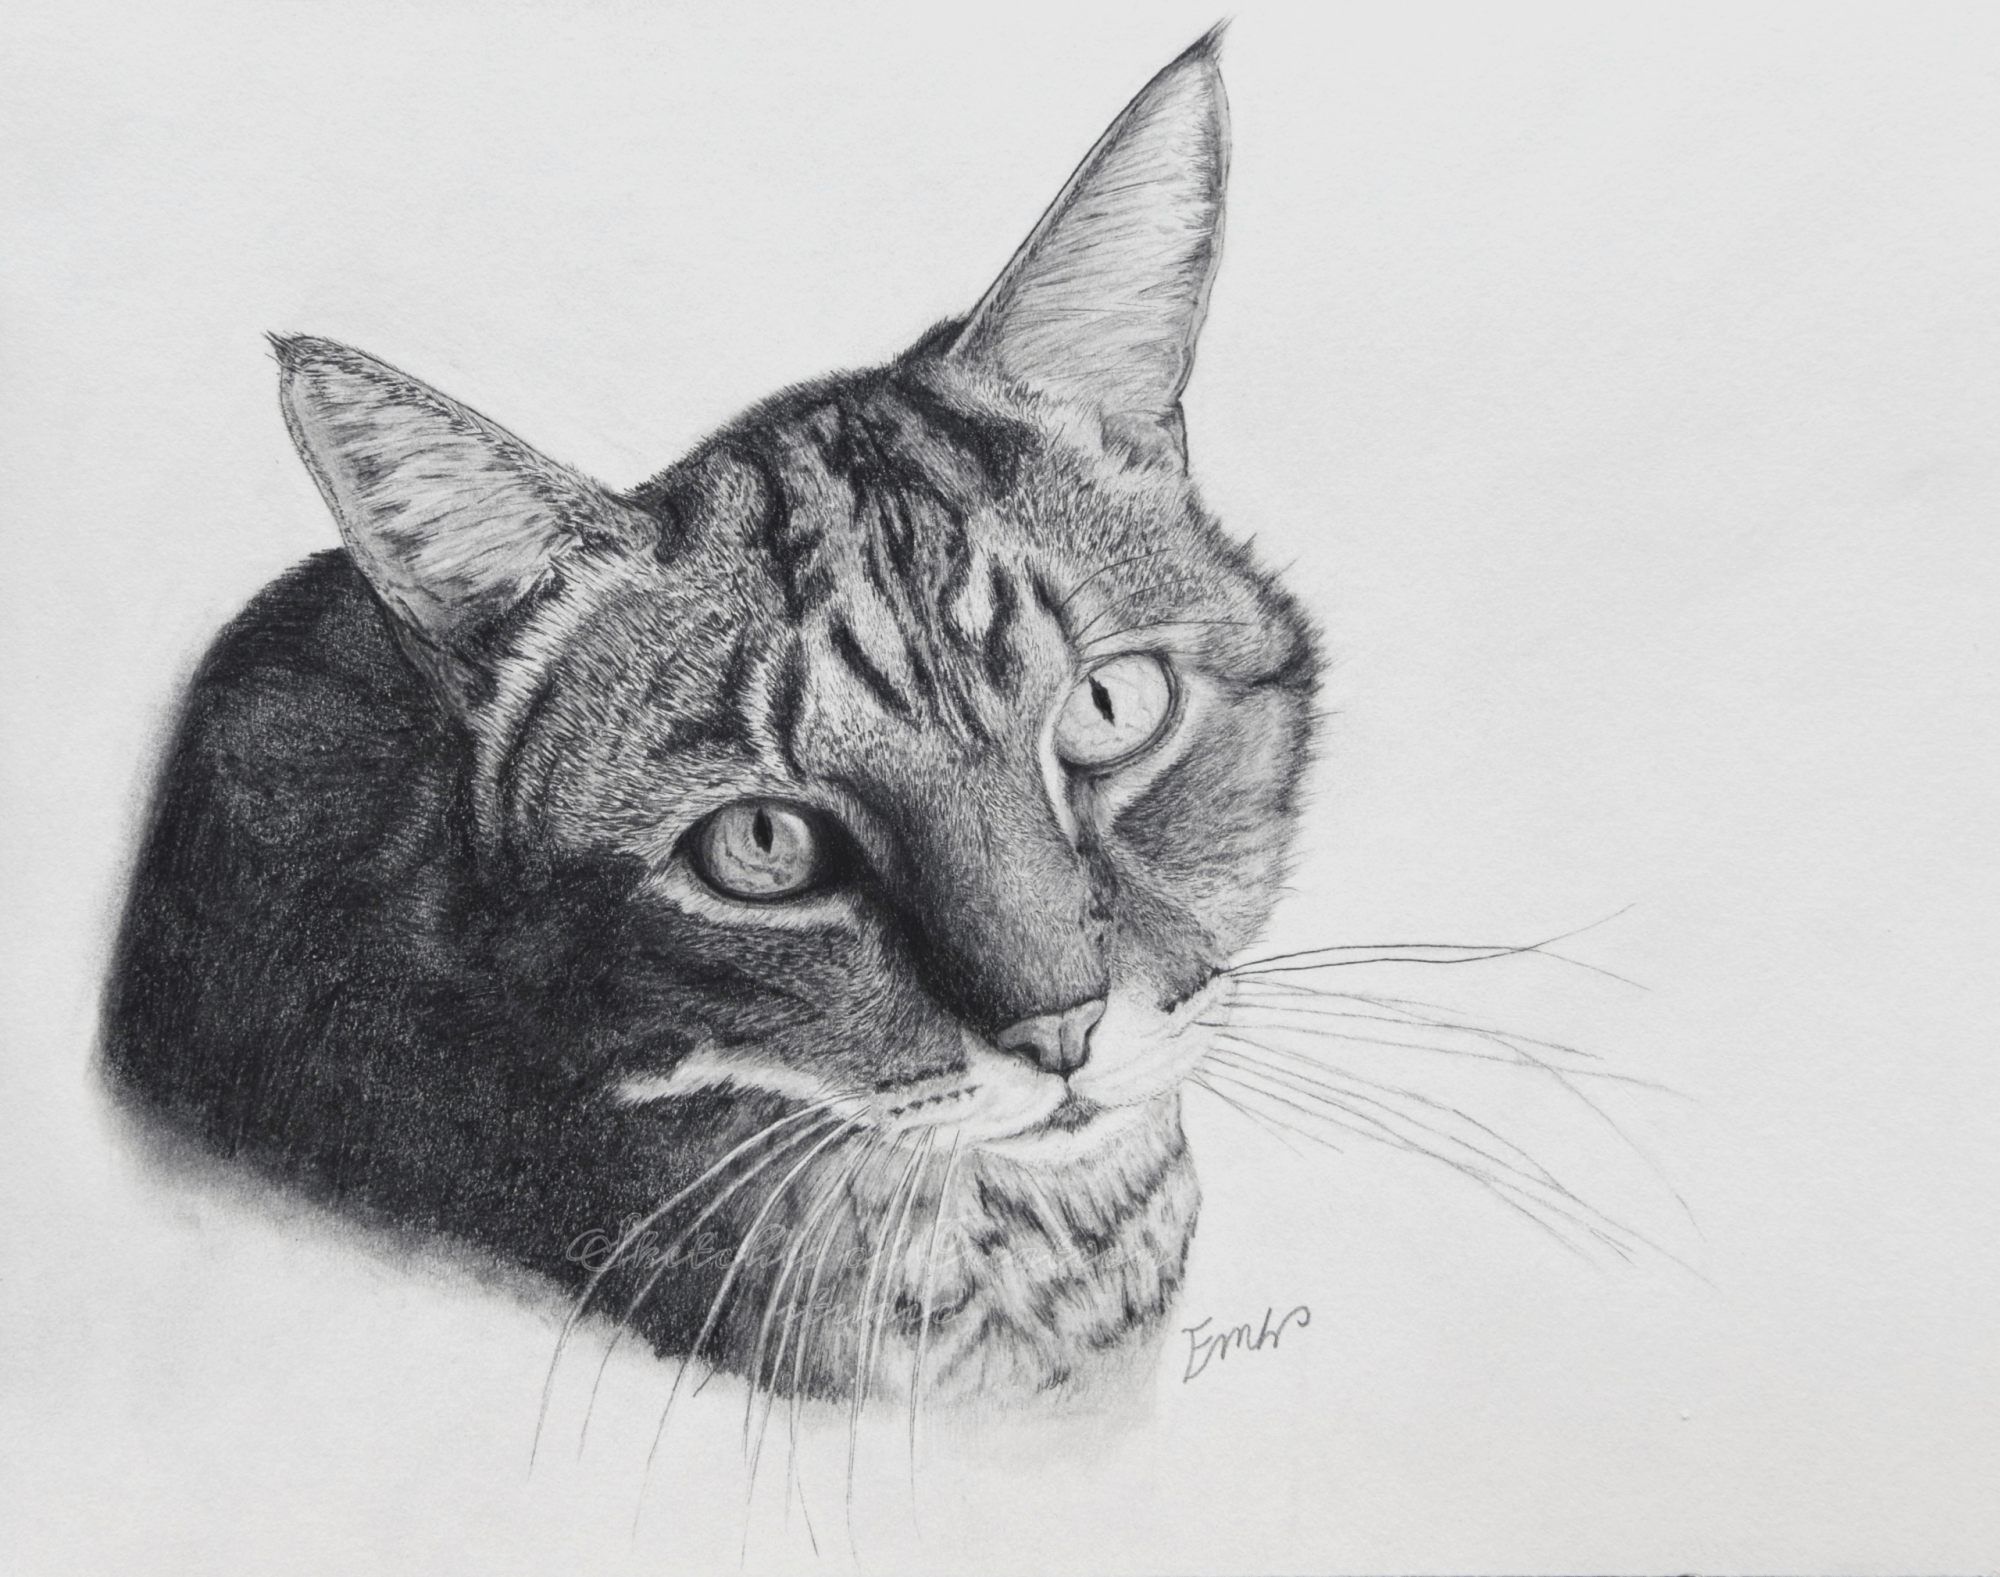 'Tiger' a drawing of a tabby cat. 9x12 inches. Completed February 2018